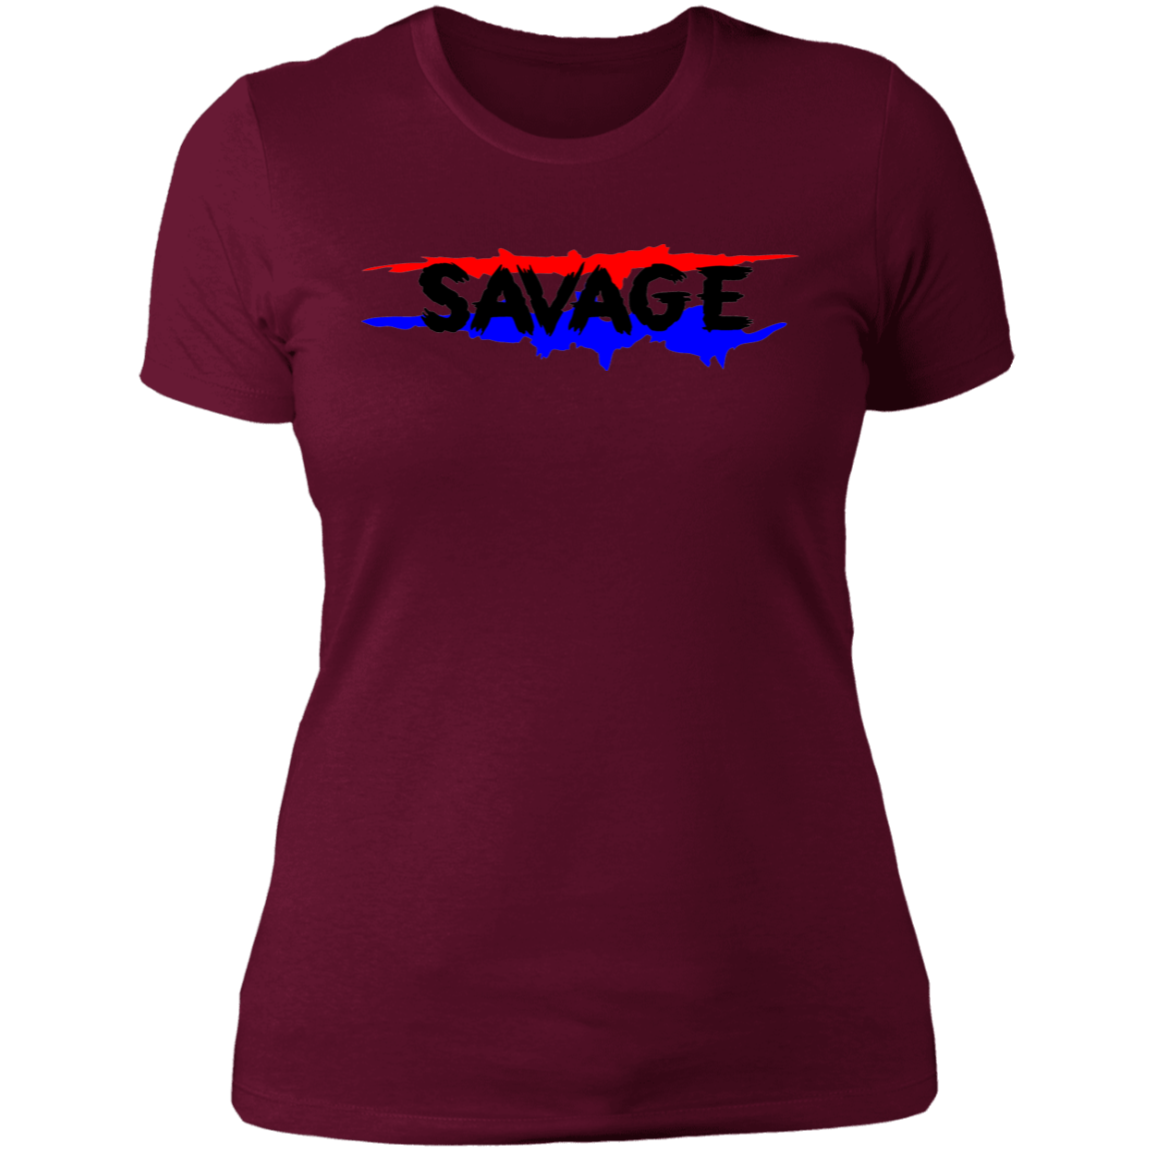 Savage A-Team Relaxed Womens Graphic Tee